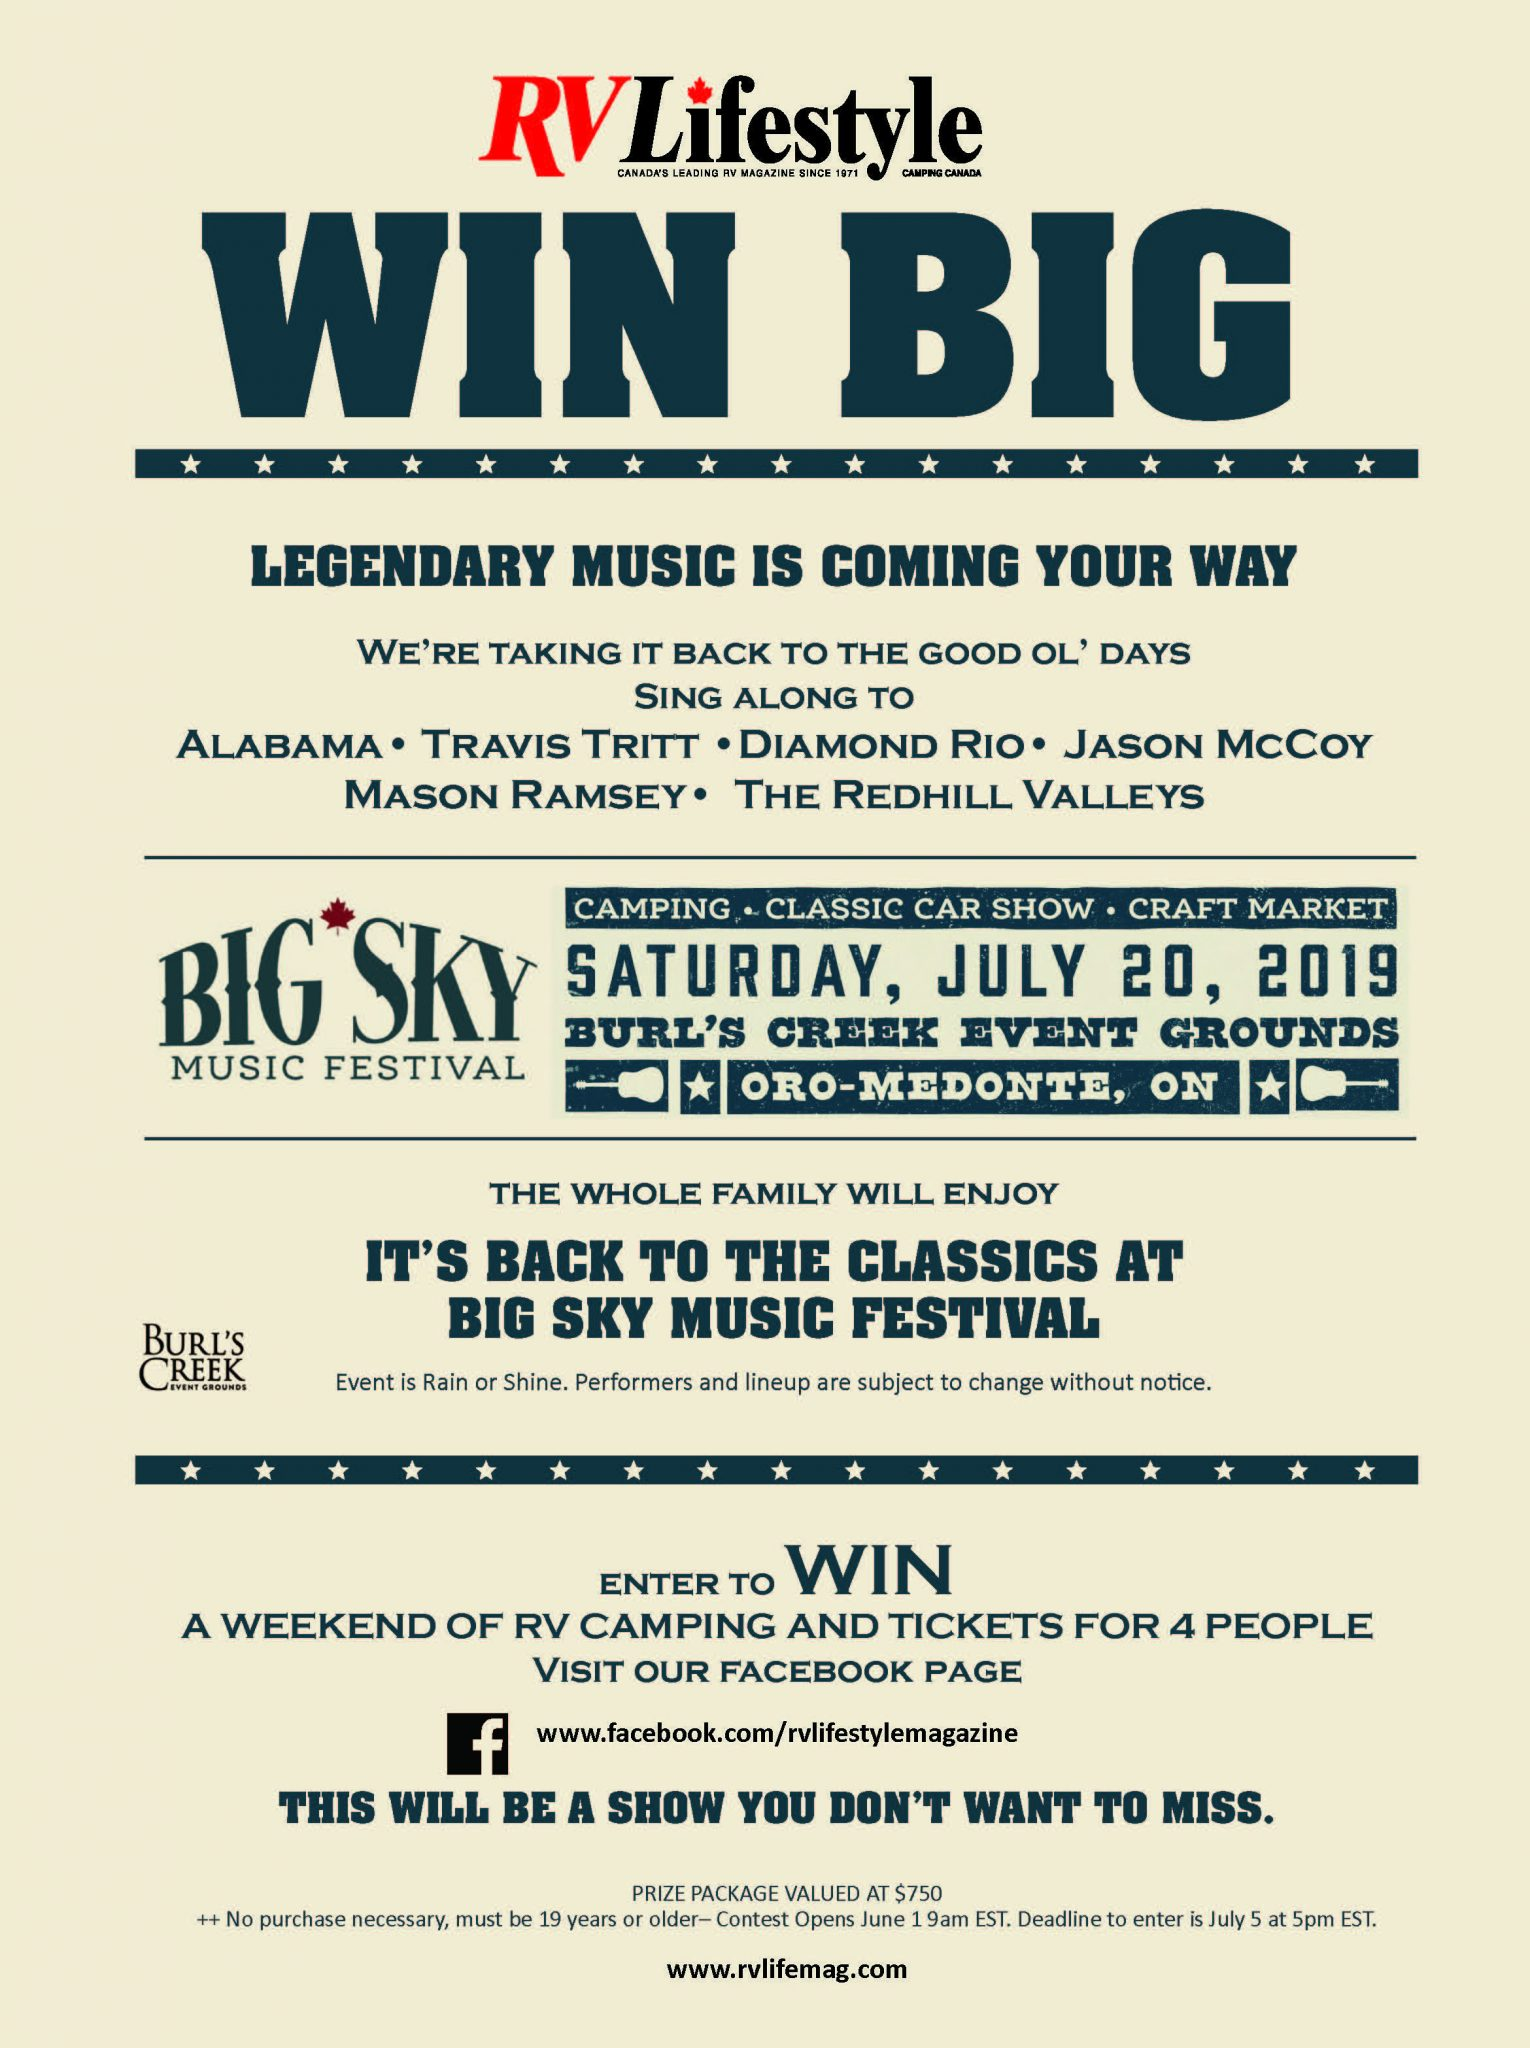 Big Sky Music Festival Contest Rules and Regulations - RV Lifestyle